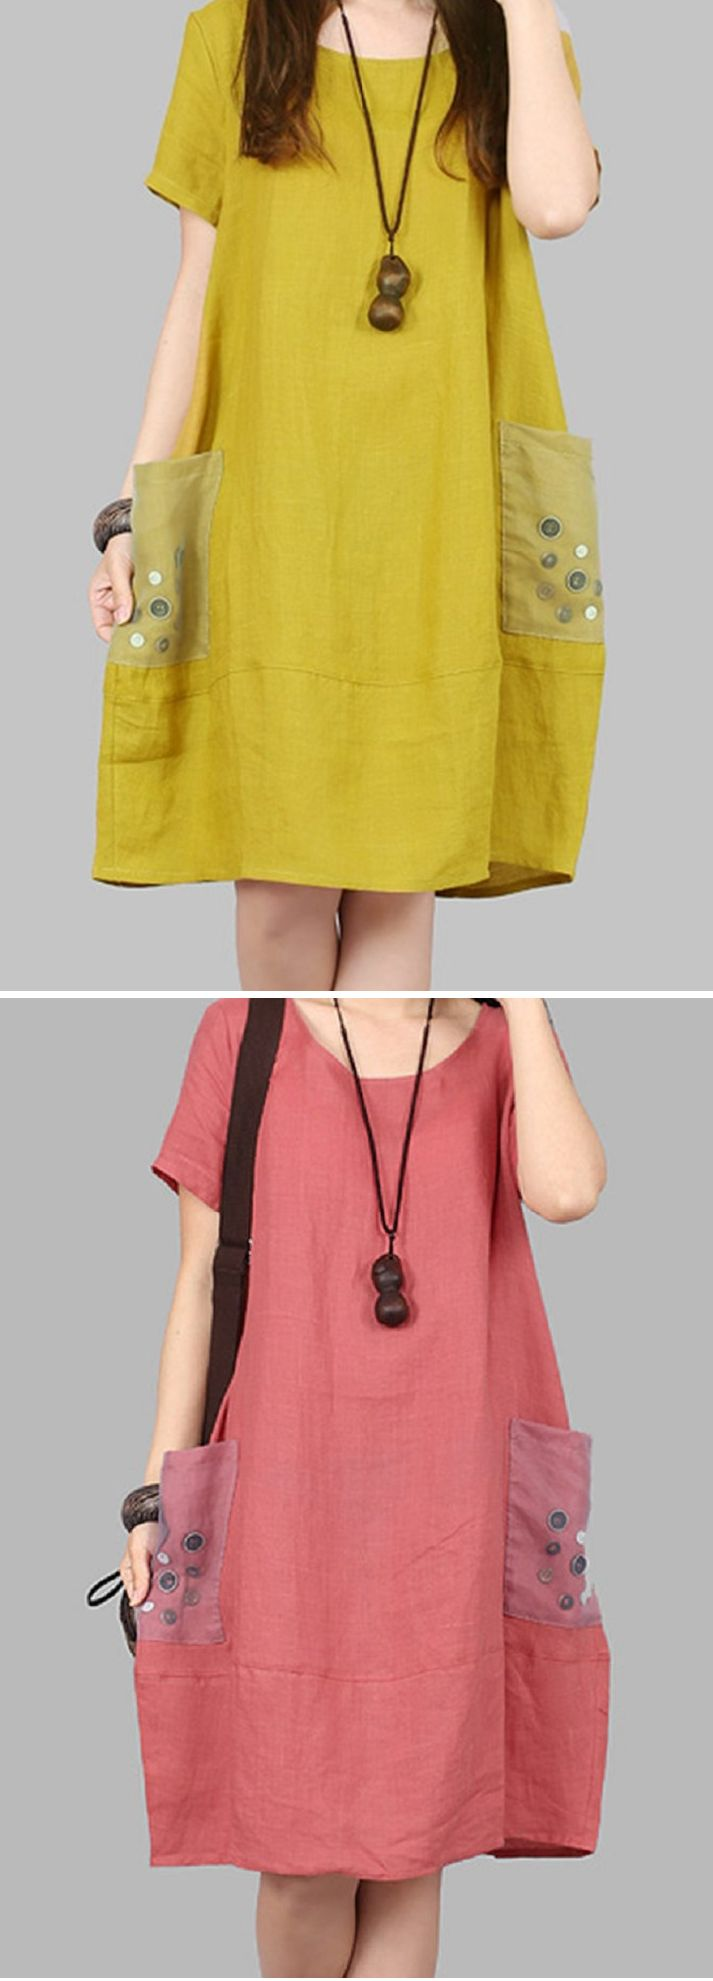 US$ 23.79 Casual Pocket Button Decorate Short Sleeve O-neck Dress For Women